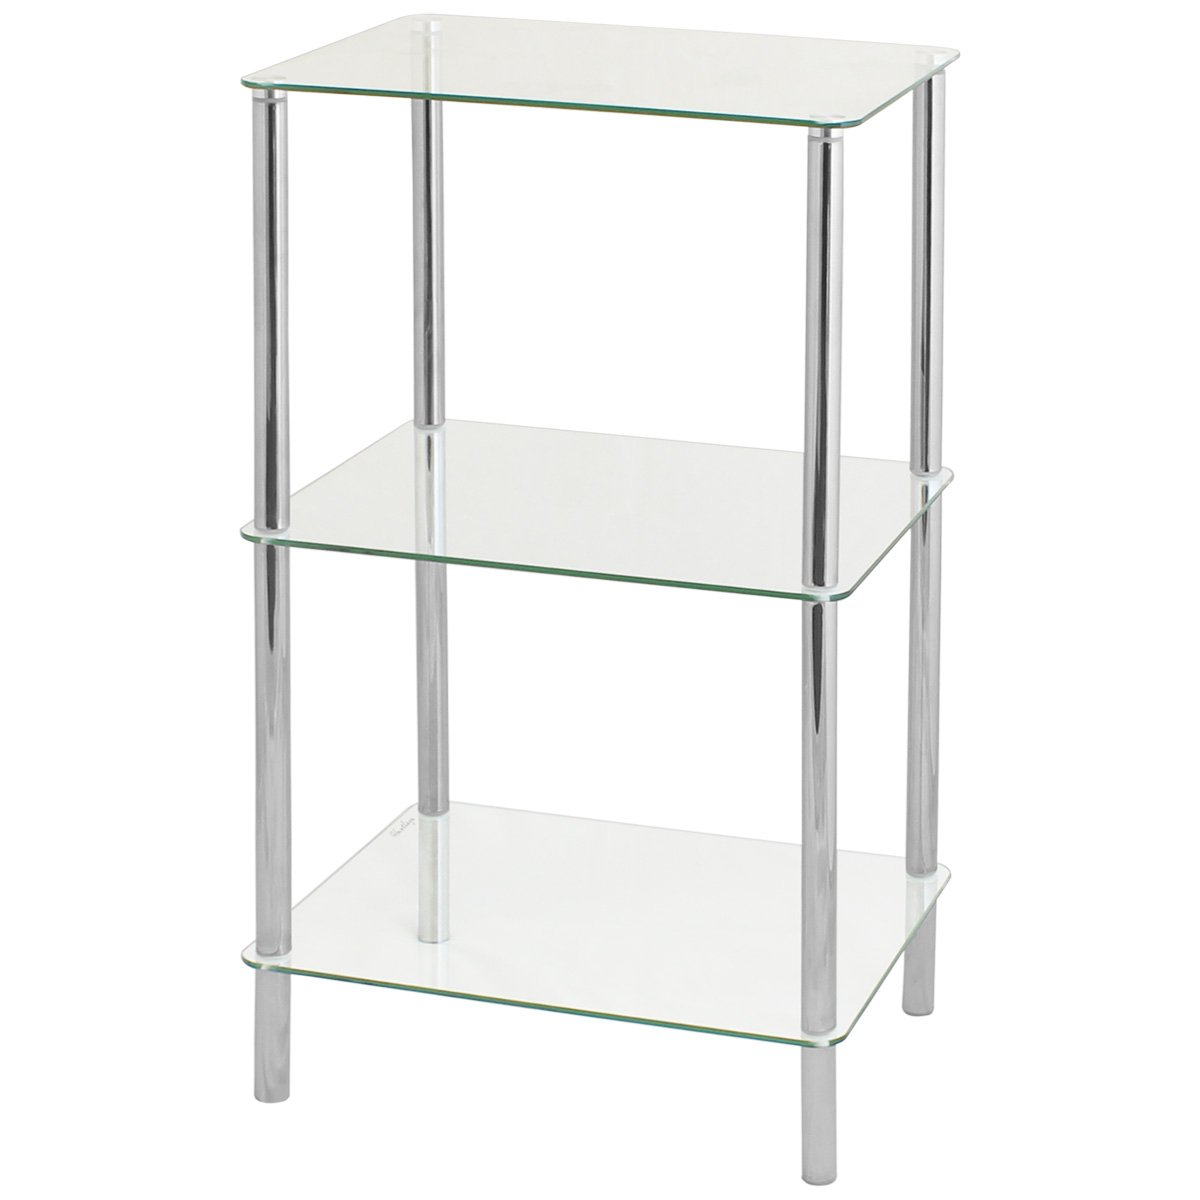 Hartleys 74cm 3 Tier Clear Glass Shelf Unit